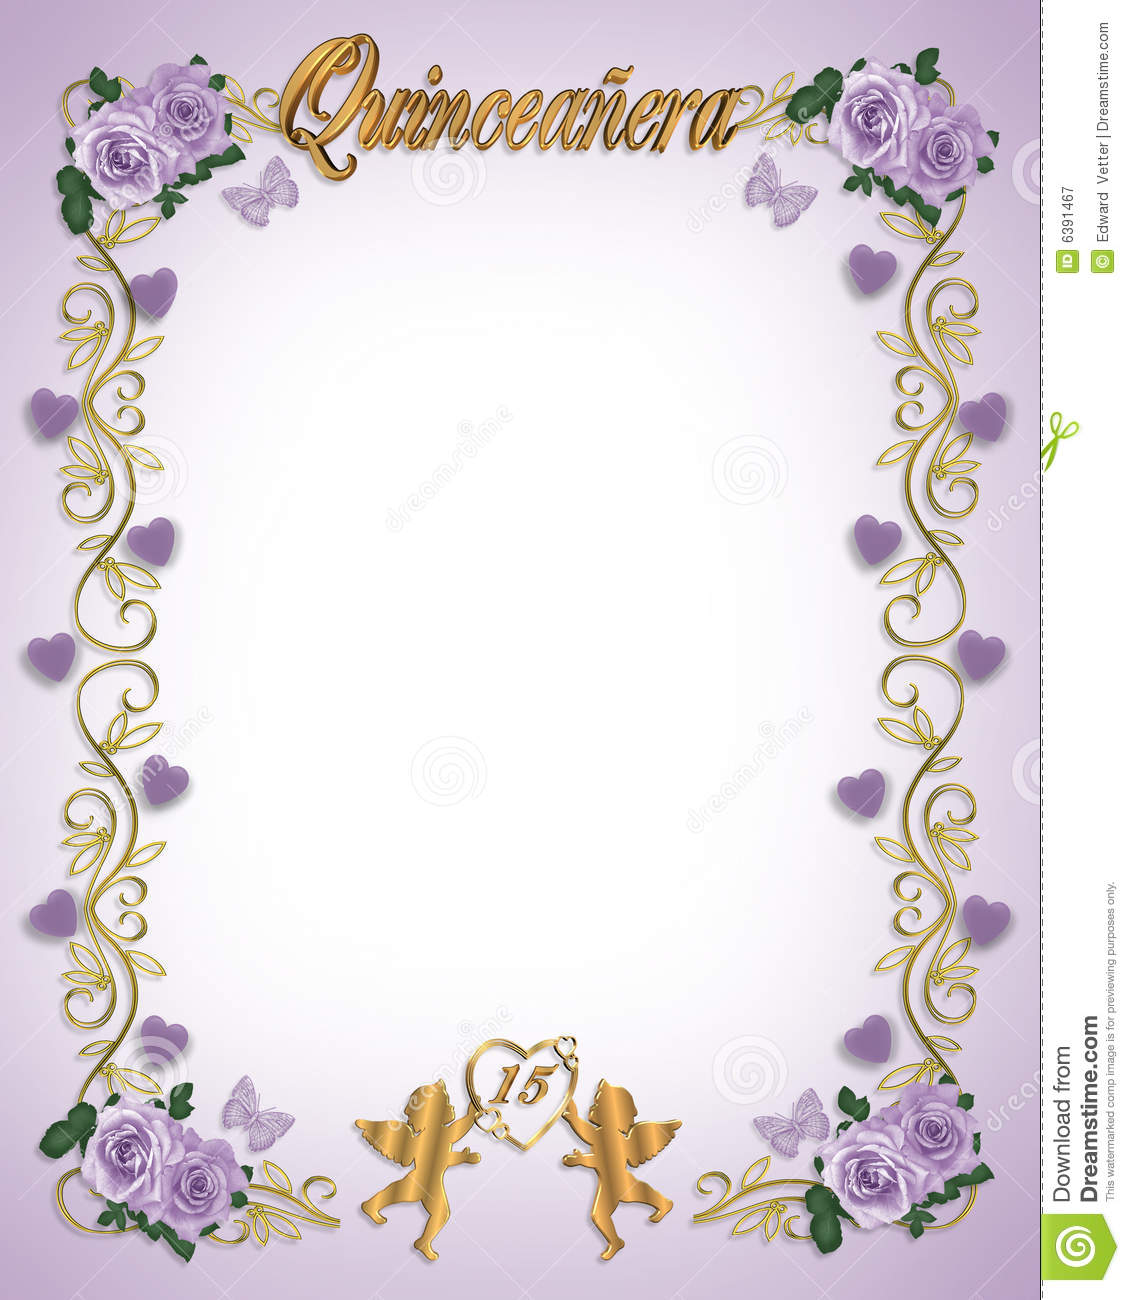 15th Birthday Quinceanera Invitation Royalty Free Stock ...